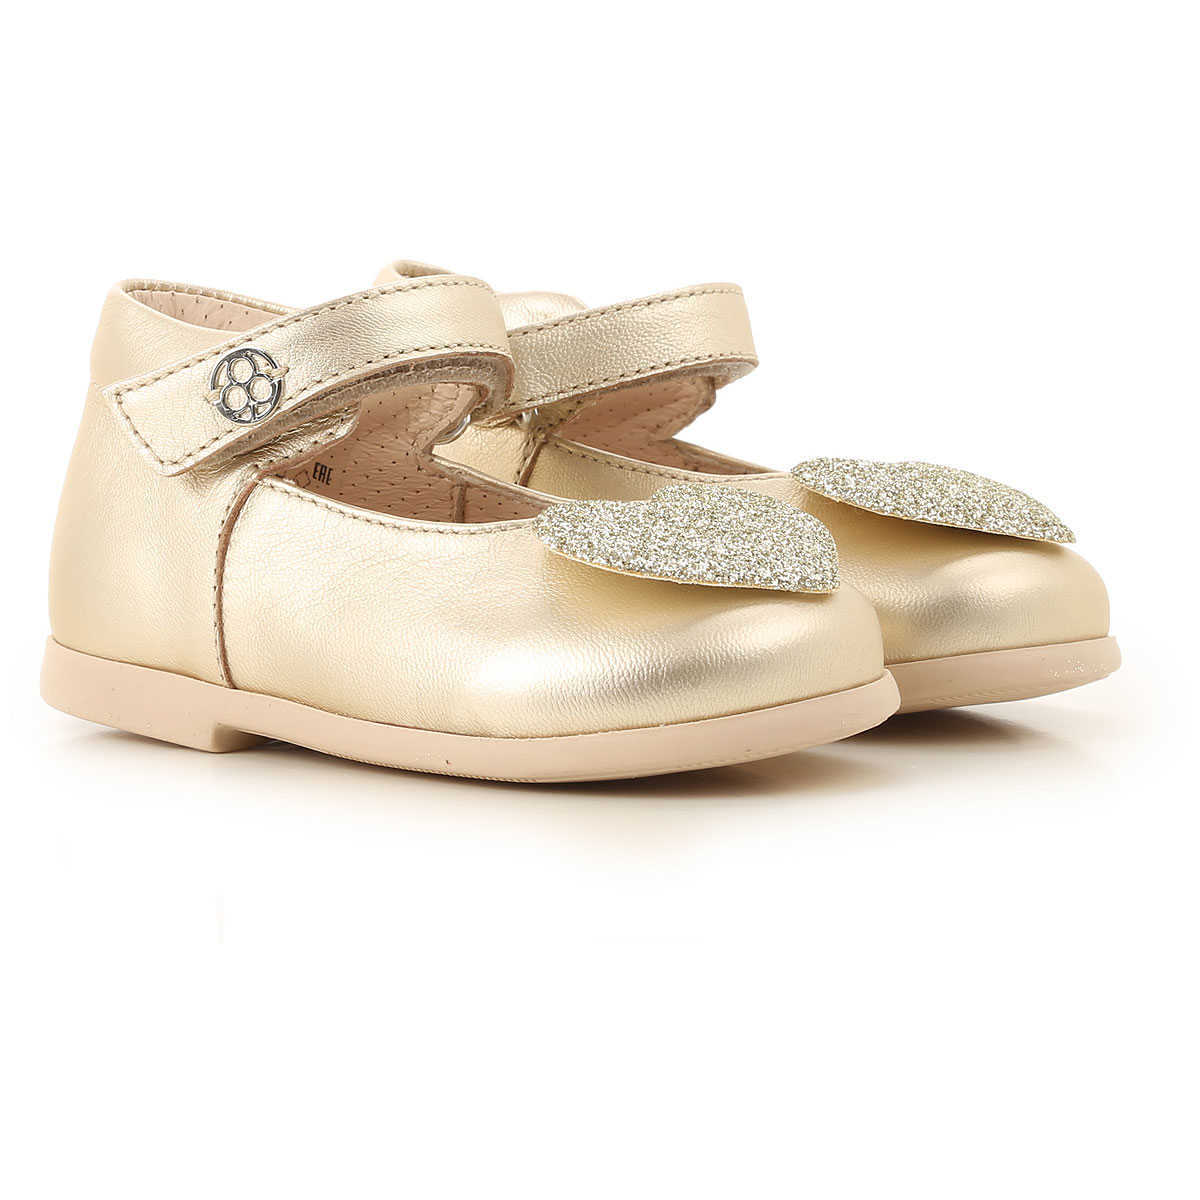 Florens Kids Shoes for Girls Gold Canada - GOOFASH -